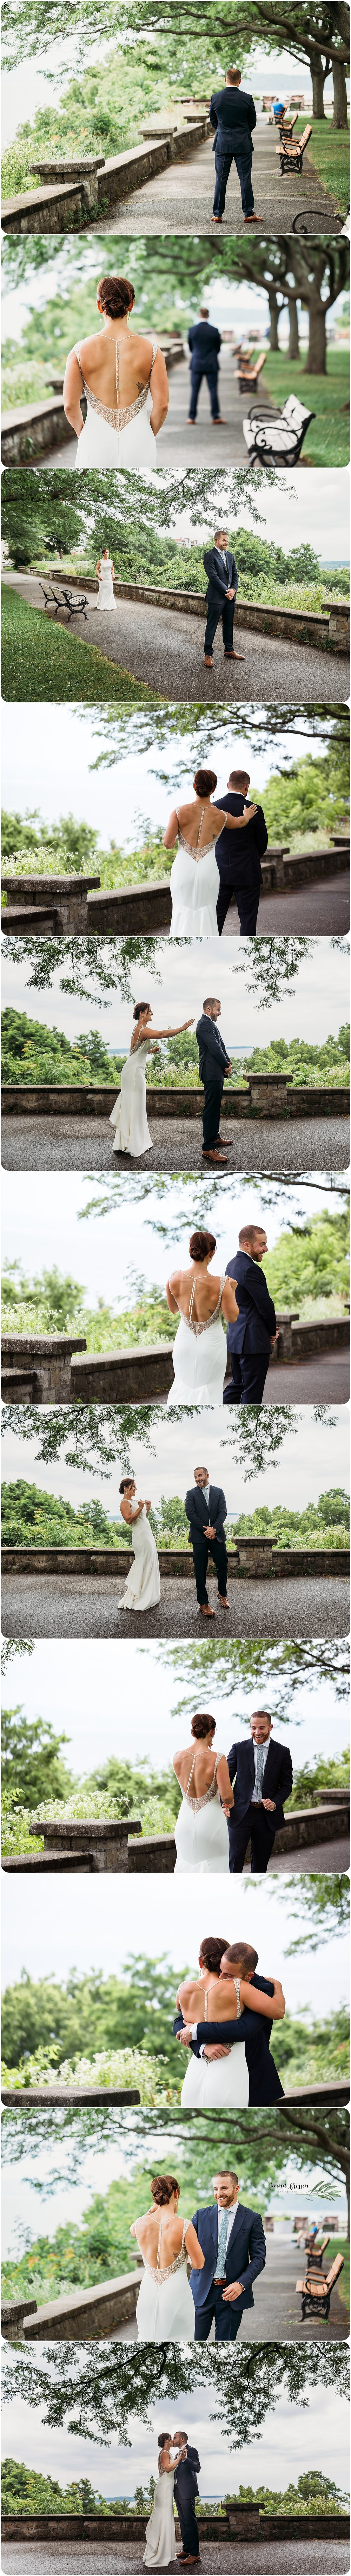 Wedding First Look - Burlington Vermont Wedding Photography